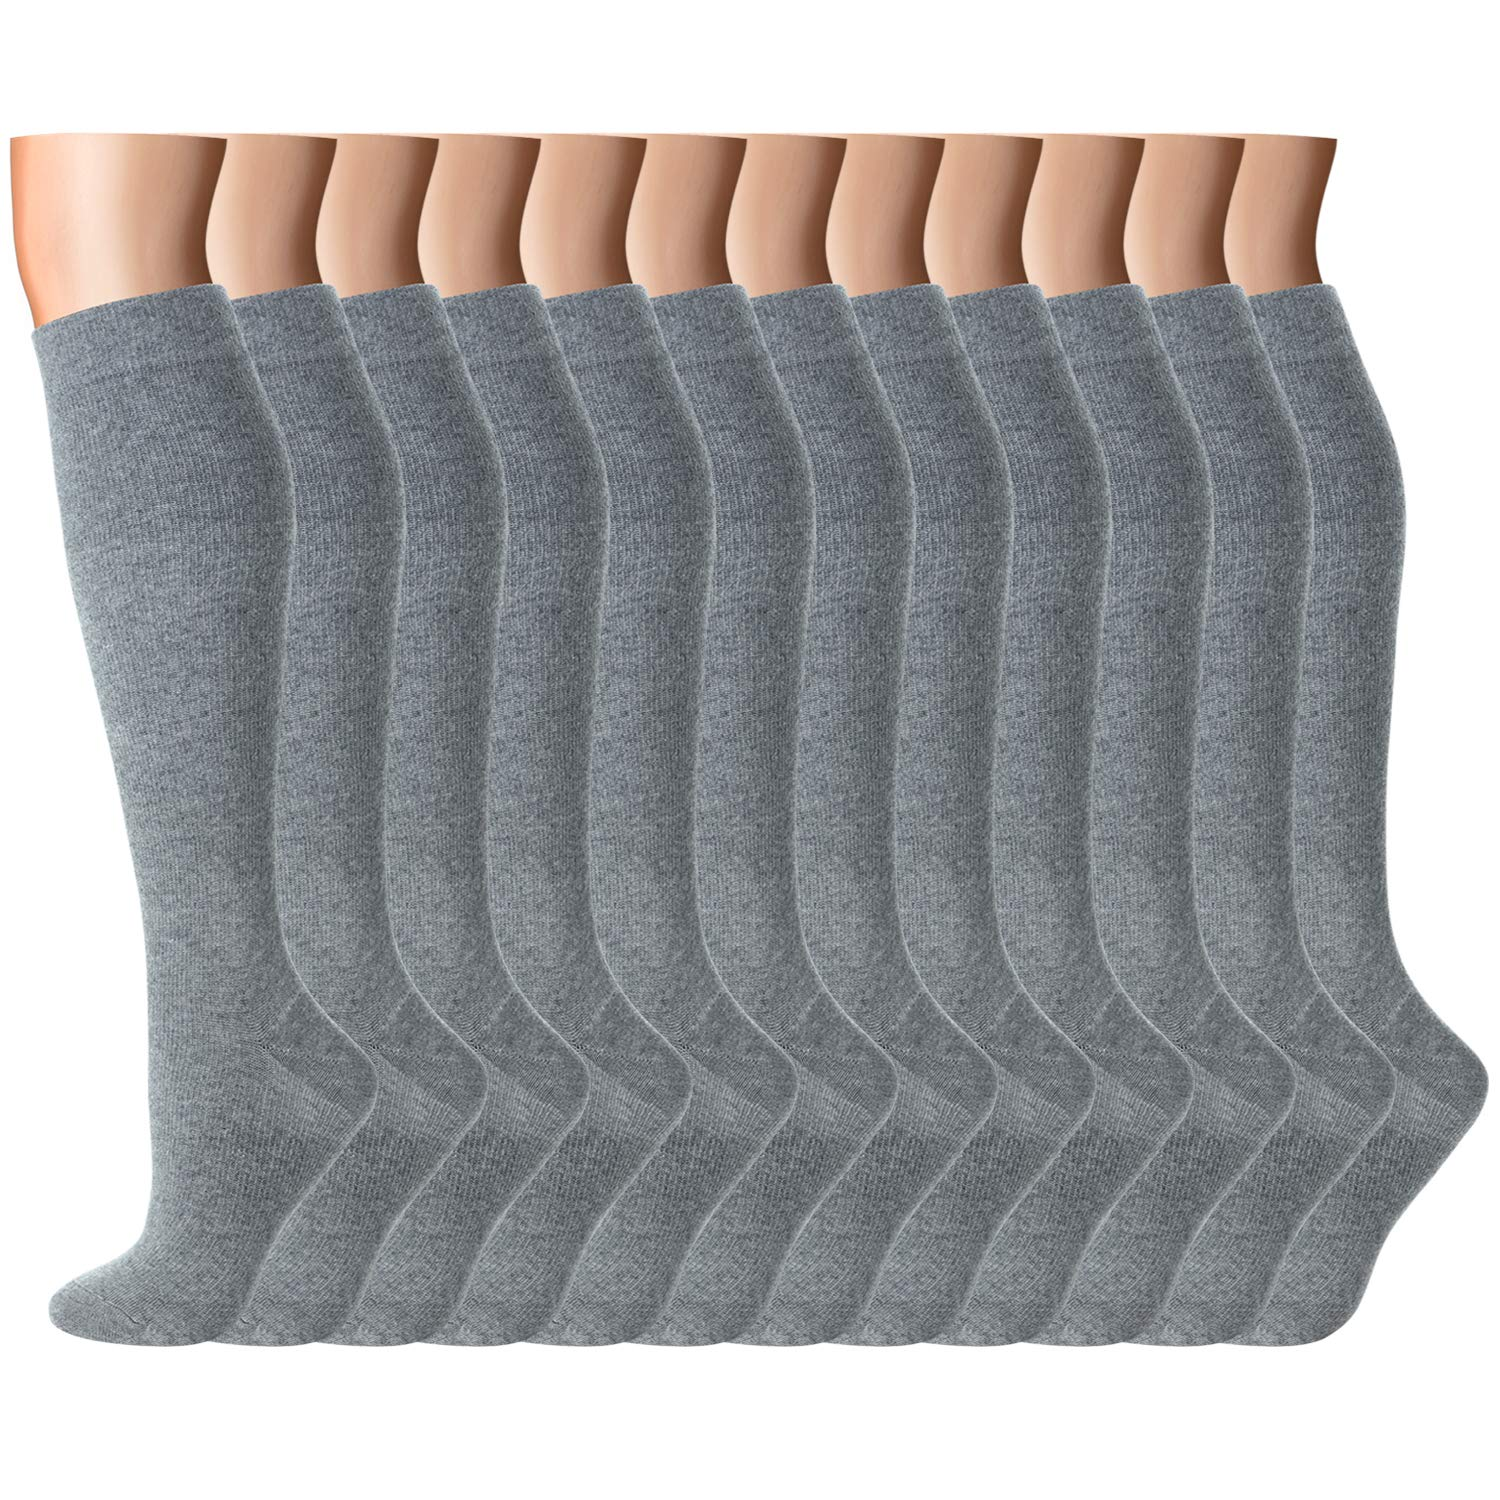 Compression Socks Women Men 15-20 mmHg, 6/7/12-Pairs Mens Womens Athletic Sock for Dress,Running,Medical,Varicose Veins,Travel (Grey-12 Pairs, L/XL(US Women 8-15.5/US Men 8-14))